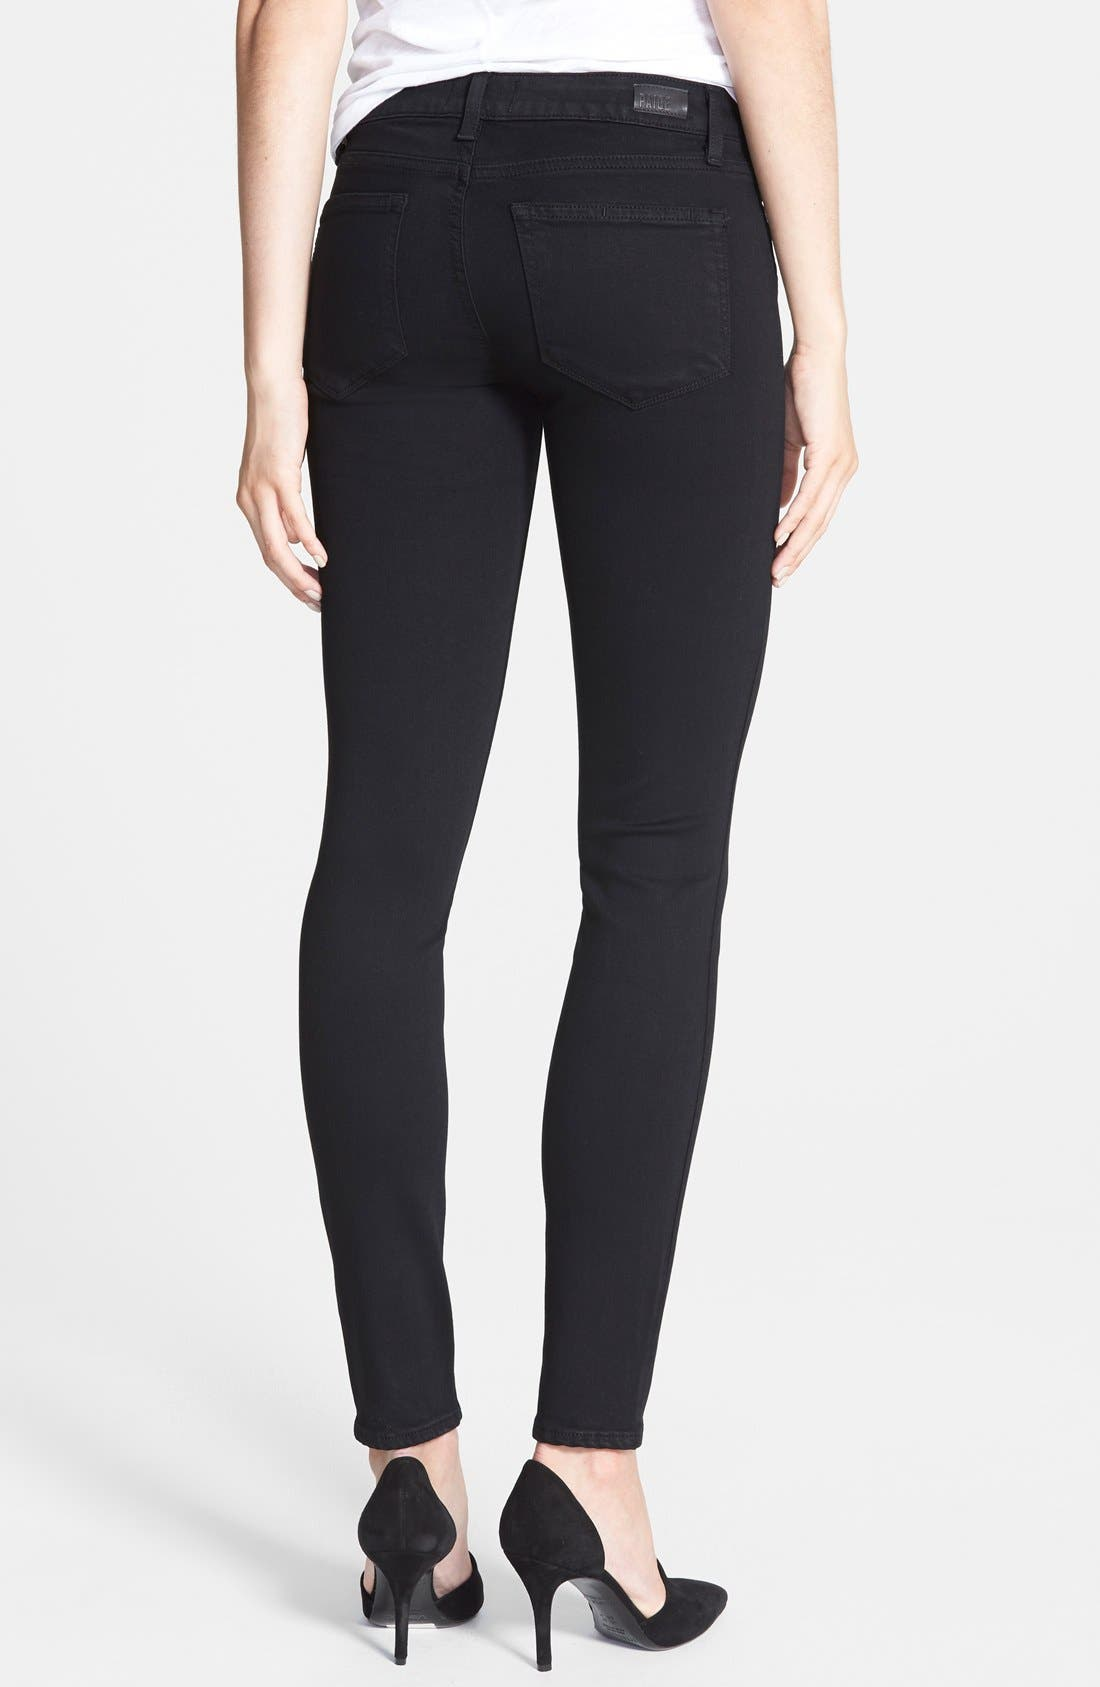 PAIGE, Transcend - Verdugo Ultra Skinny Jeans, Alternate thumbnail 8, color, BLACK SHADOW